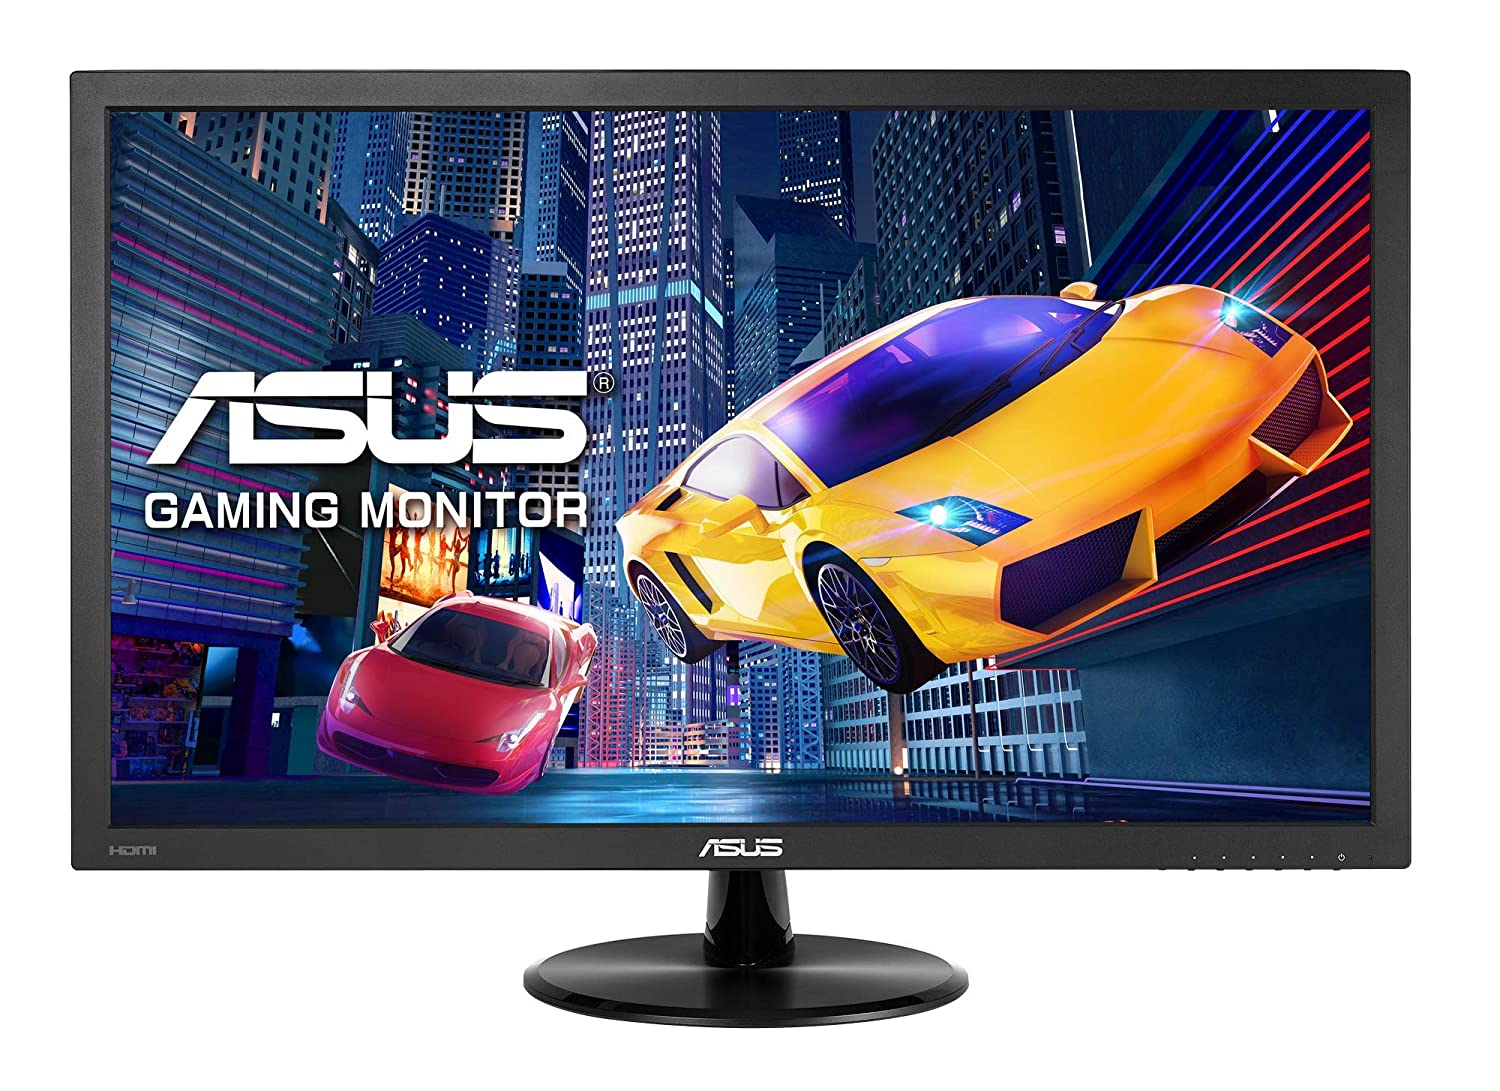 ASUS VP228H Gaming Monitor 21.5-inch FHD 1920×1080 1ms Low Blue Light Flicker-Free